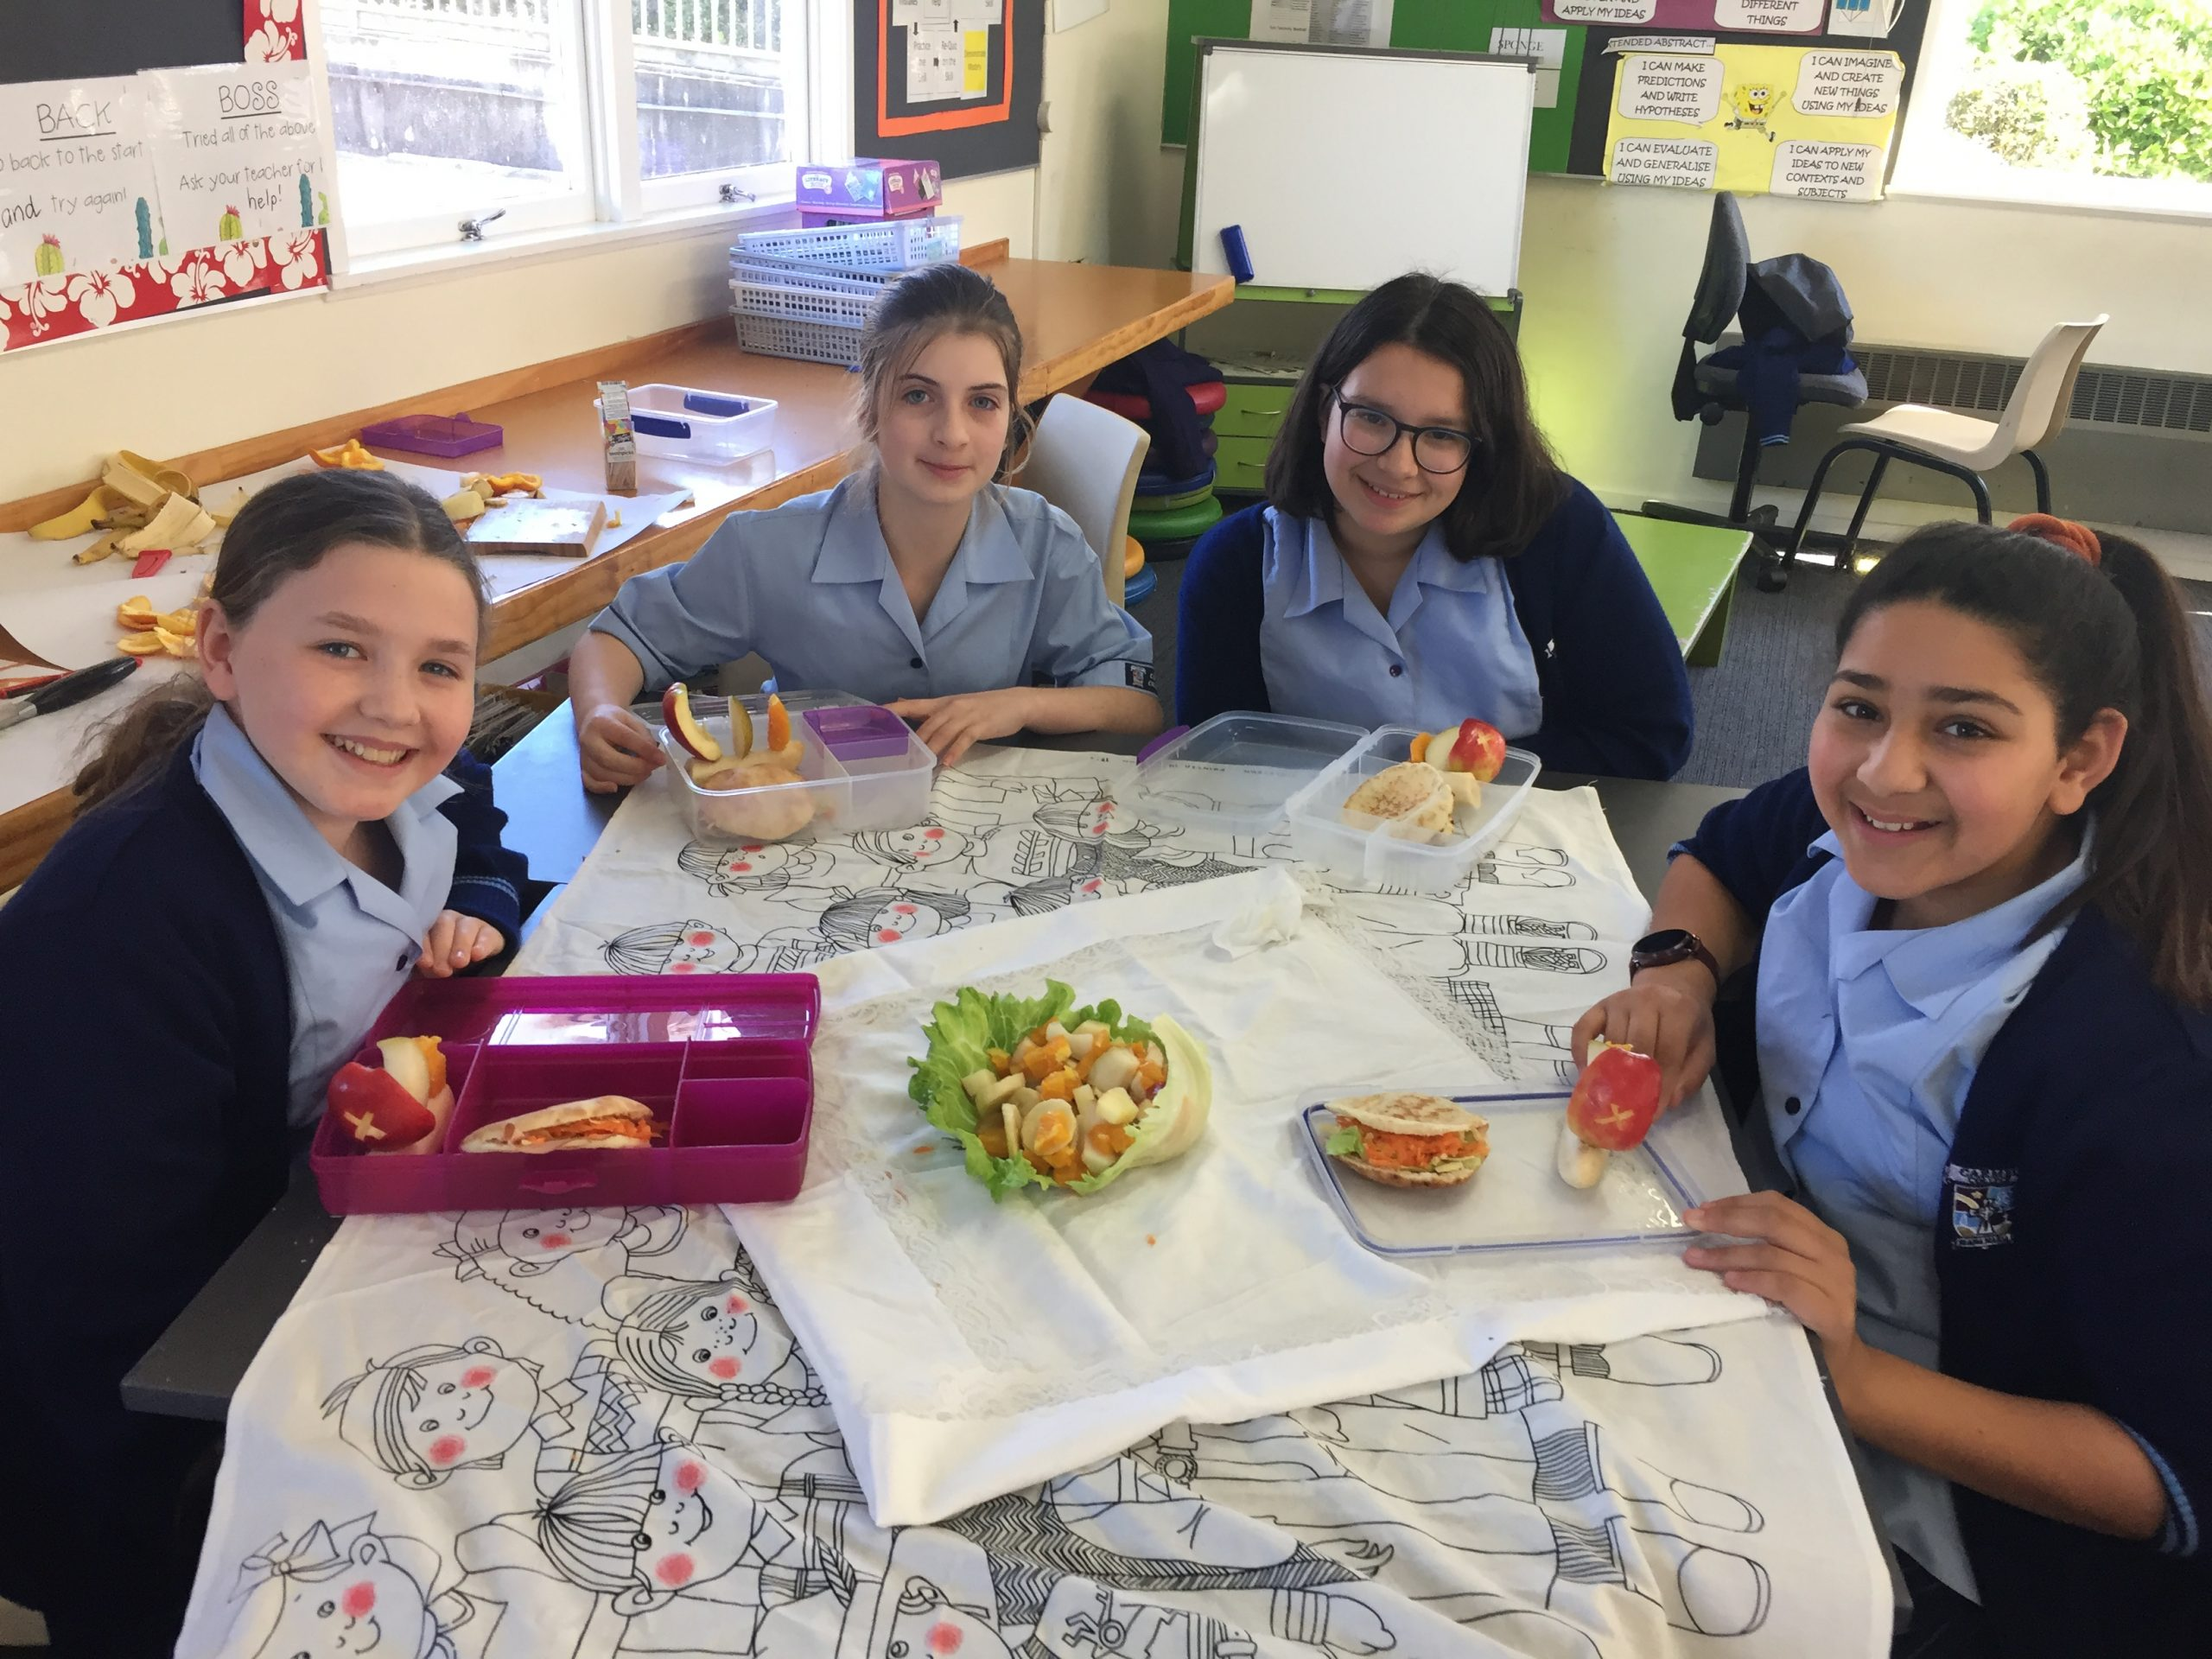 Year 7's Healthy Lunch